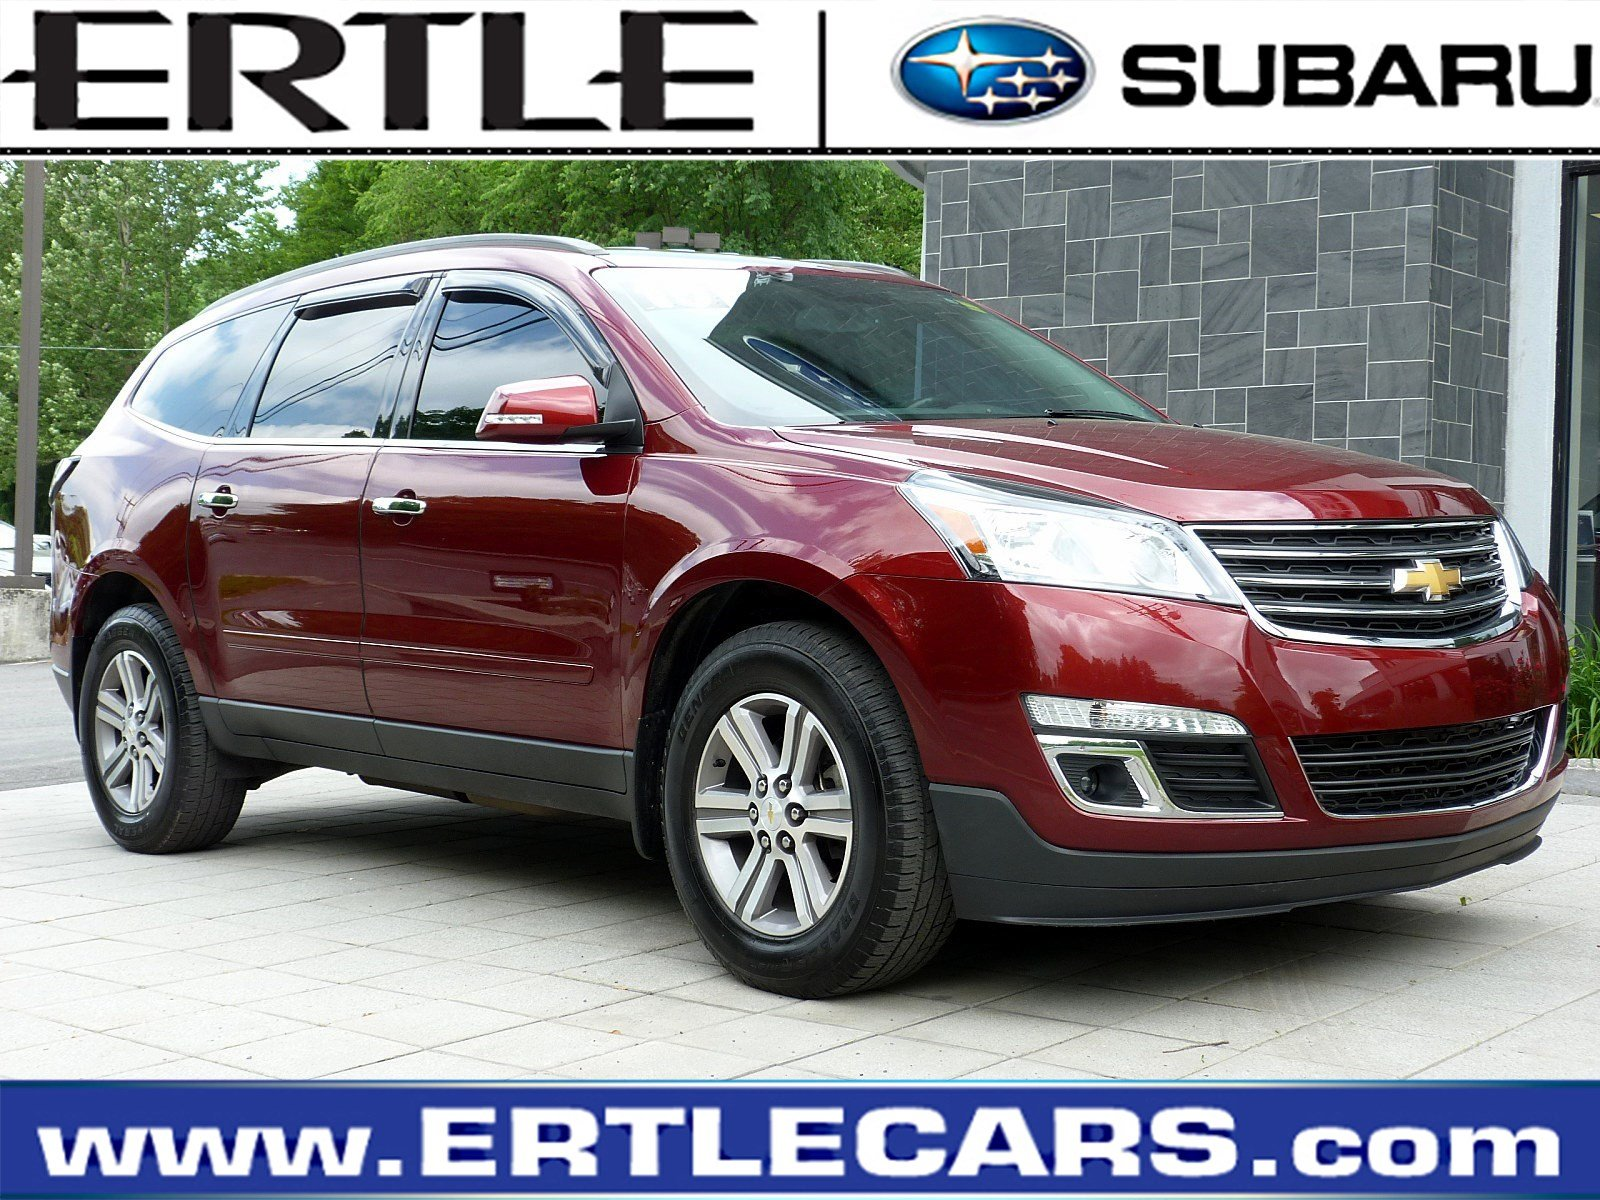 Pre-Owned 2015 Chevrolet Traverse LT AWD  LT w/2LT for sale in Stroudsburg